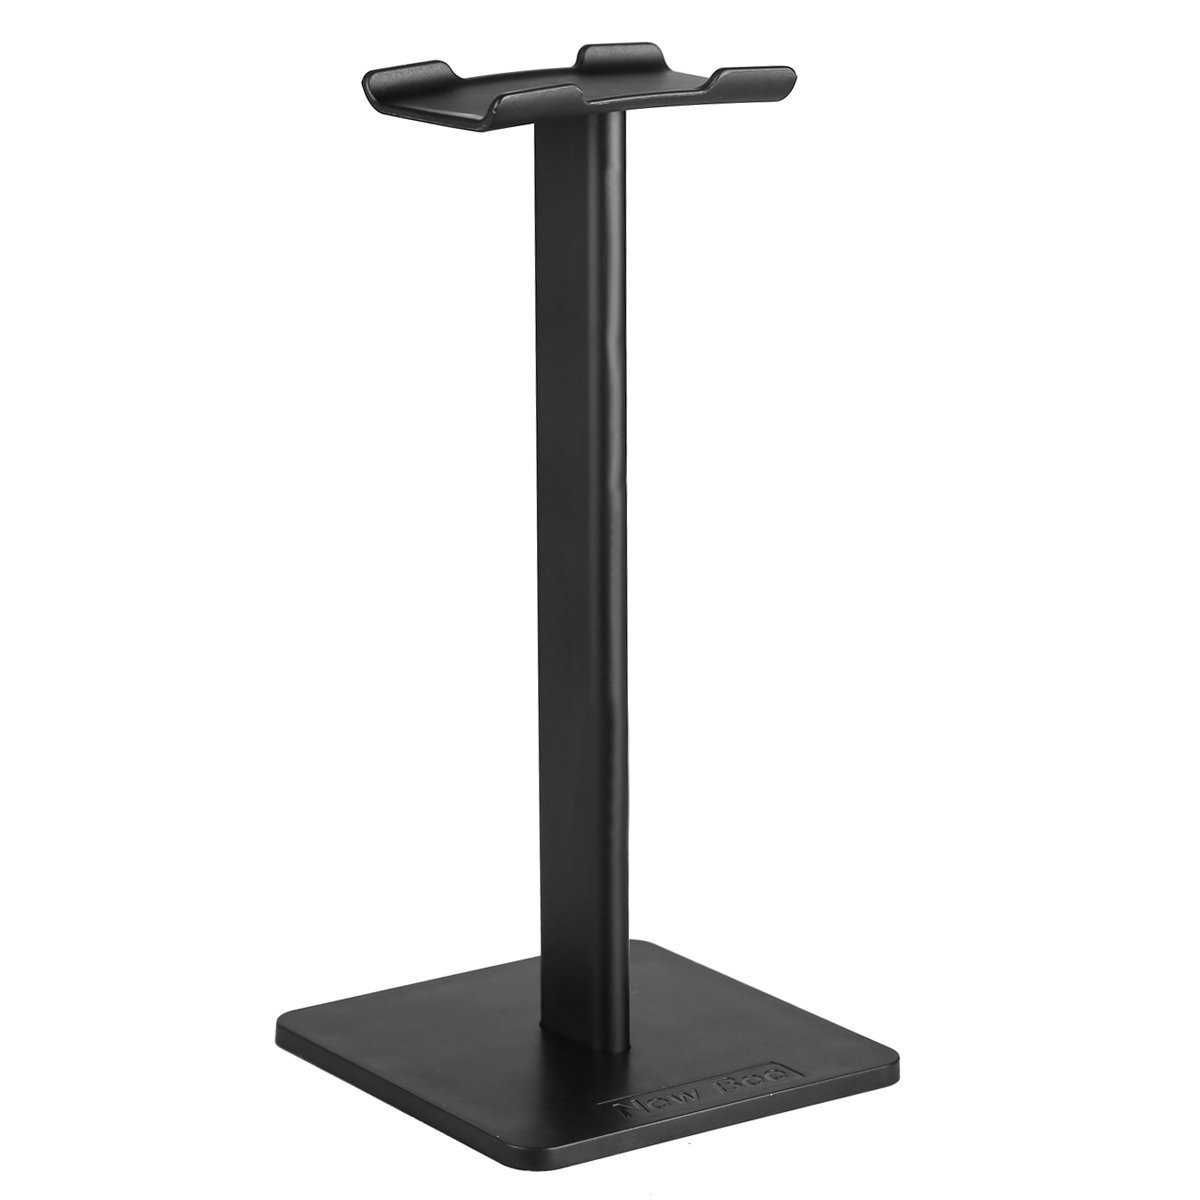 YaPeach Headphone Stand, NewBee Universal Aluminum Earphone Holder, TPU Rubber Headrest, ABS Alloy Pole Base, 3 Parts Assembly Headset Showing Display Hanger for Home Office Most Sizes Unit (Black)